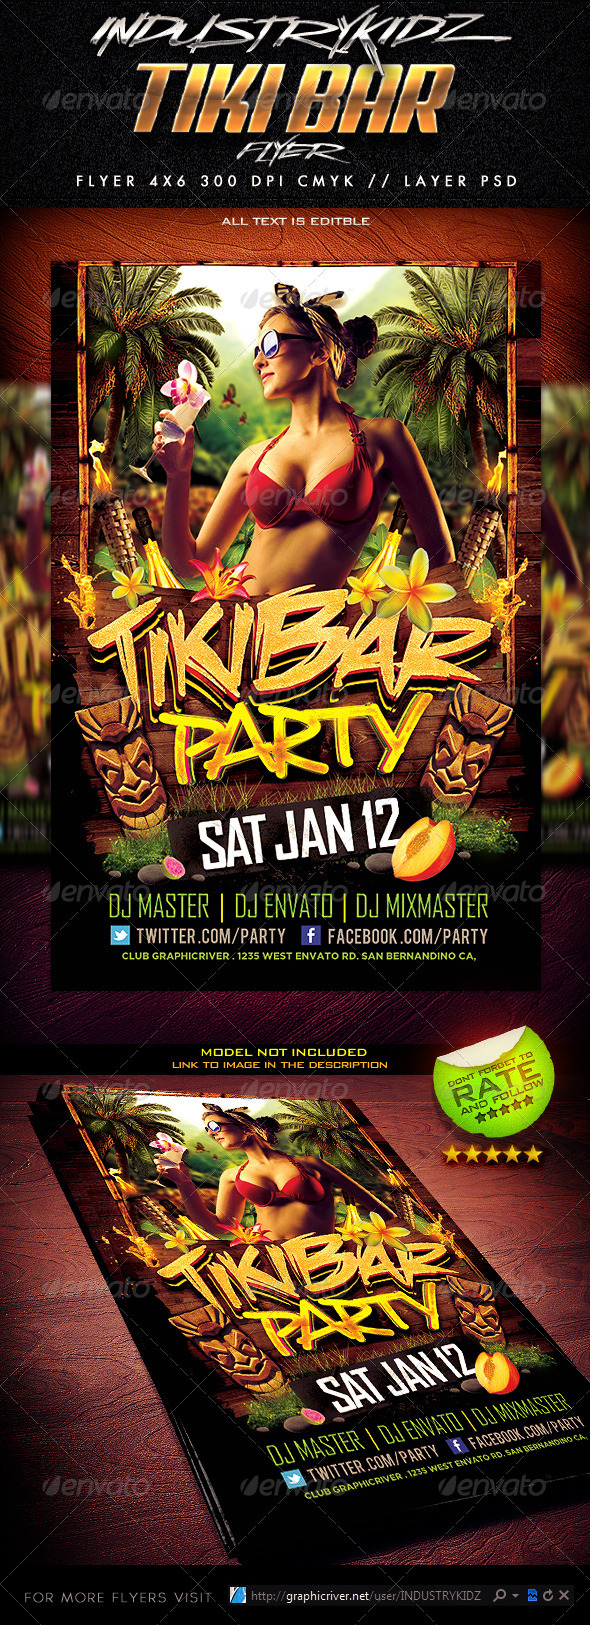 Tiki Bar Party Flyer - Clubs & Parties Events